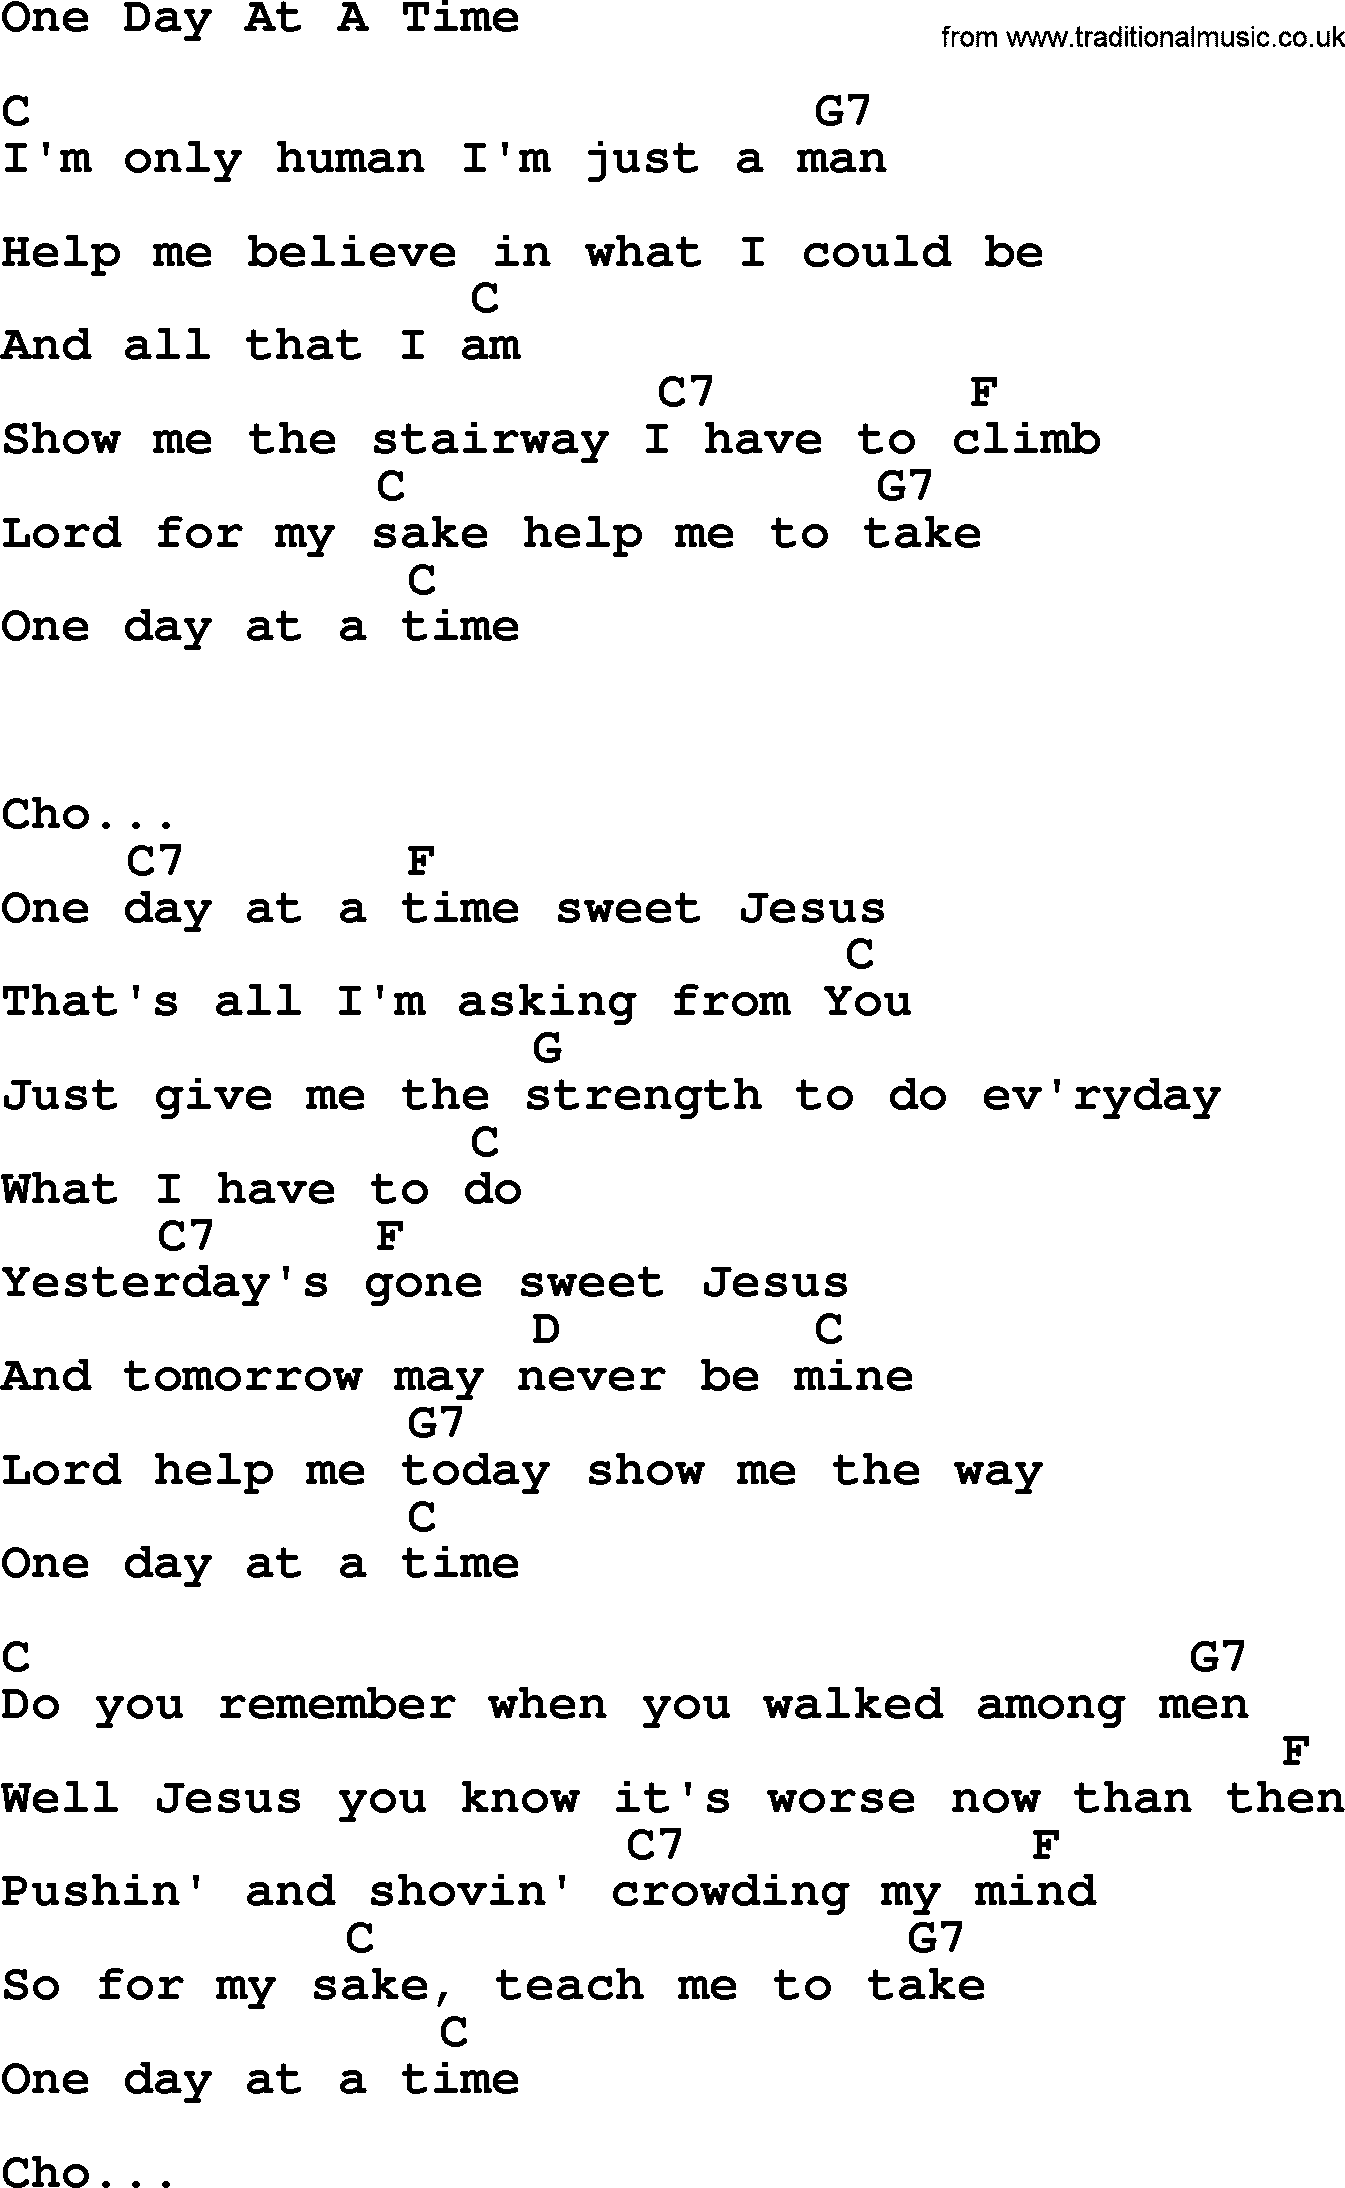 kris kristofferson song one day at a time lyrics and chords